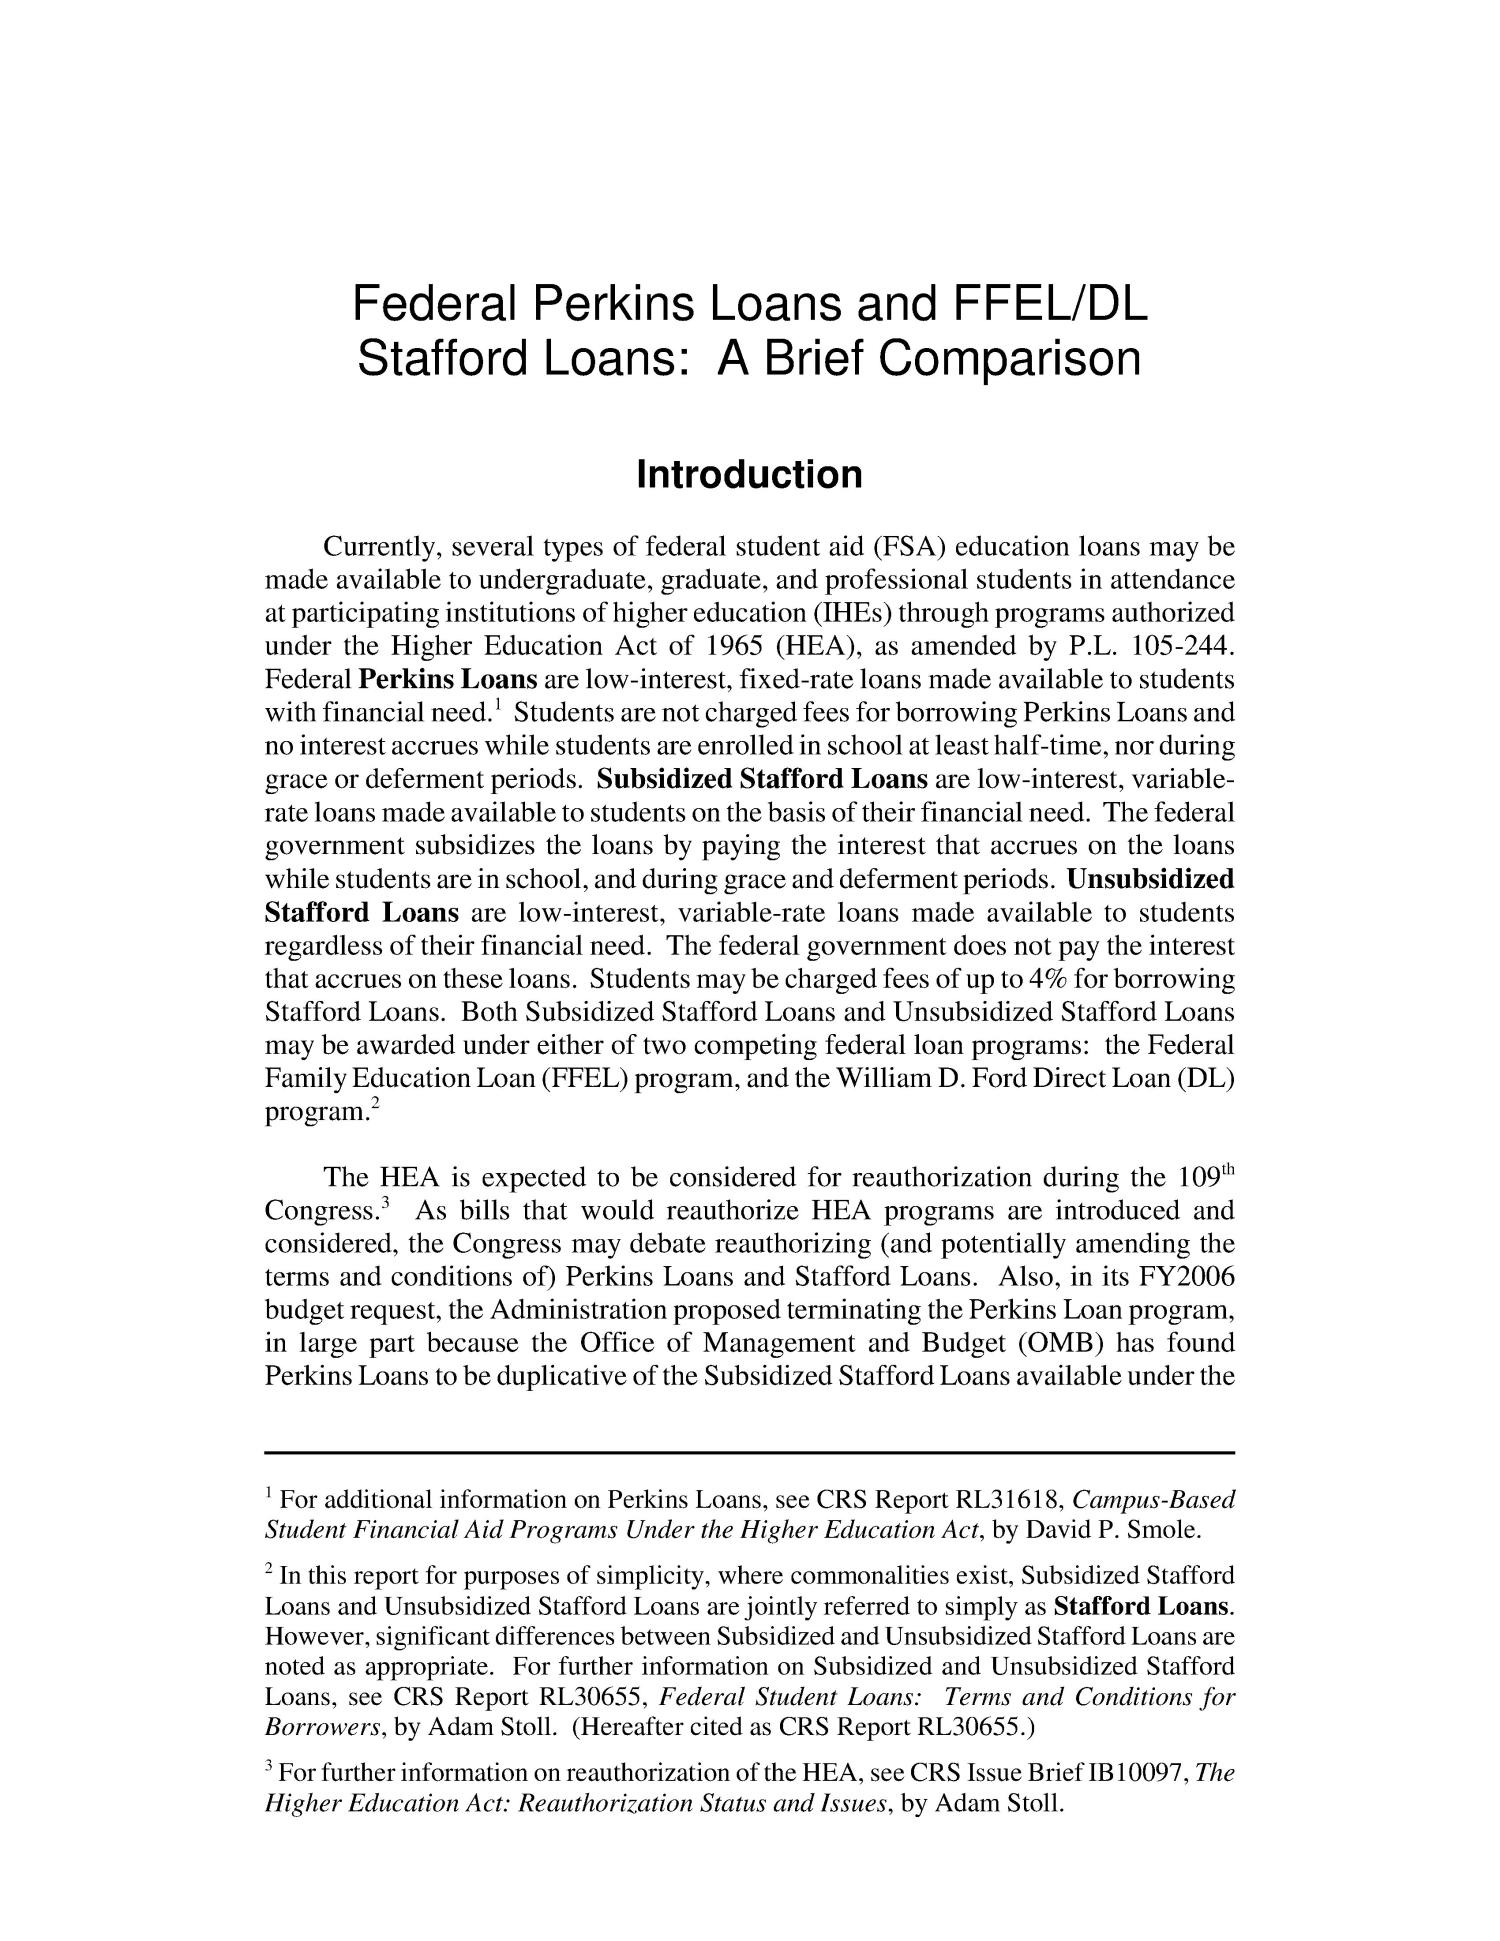 Federal Perkins Loans and FFEL/DL Stafford Loans: A Brief Comparison                                                                                                      [Sequence #]: 4 of 19